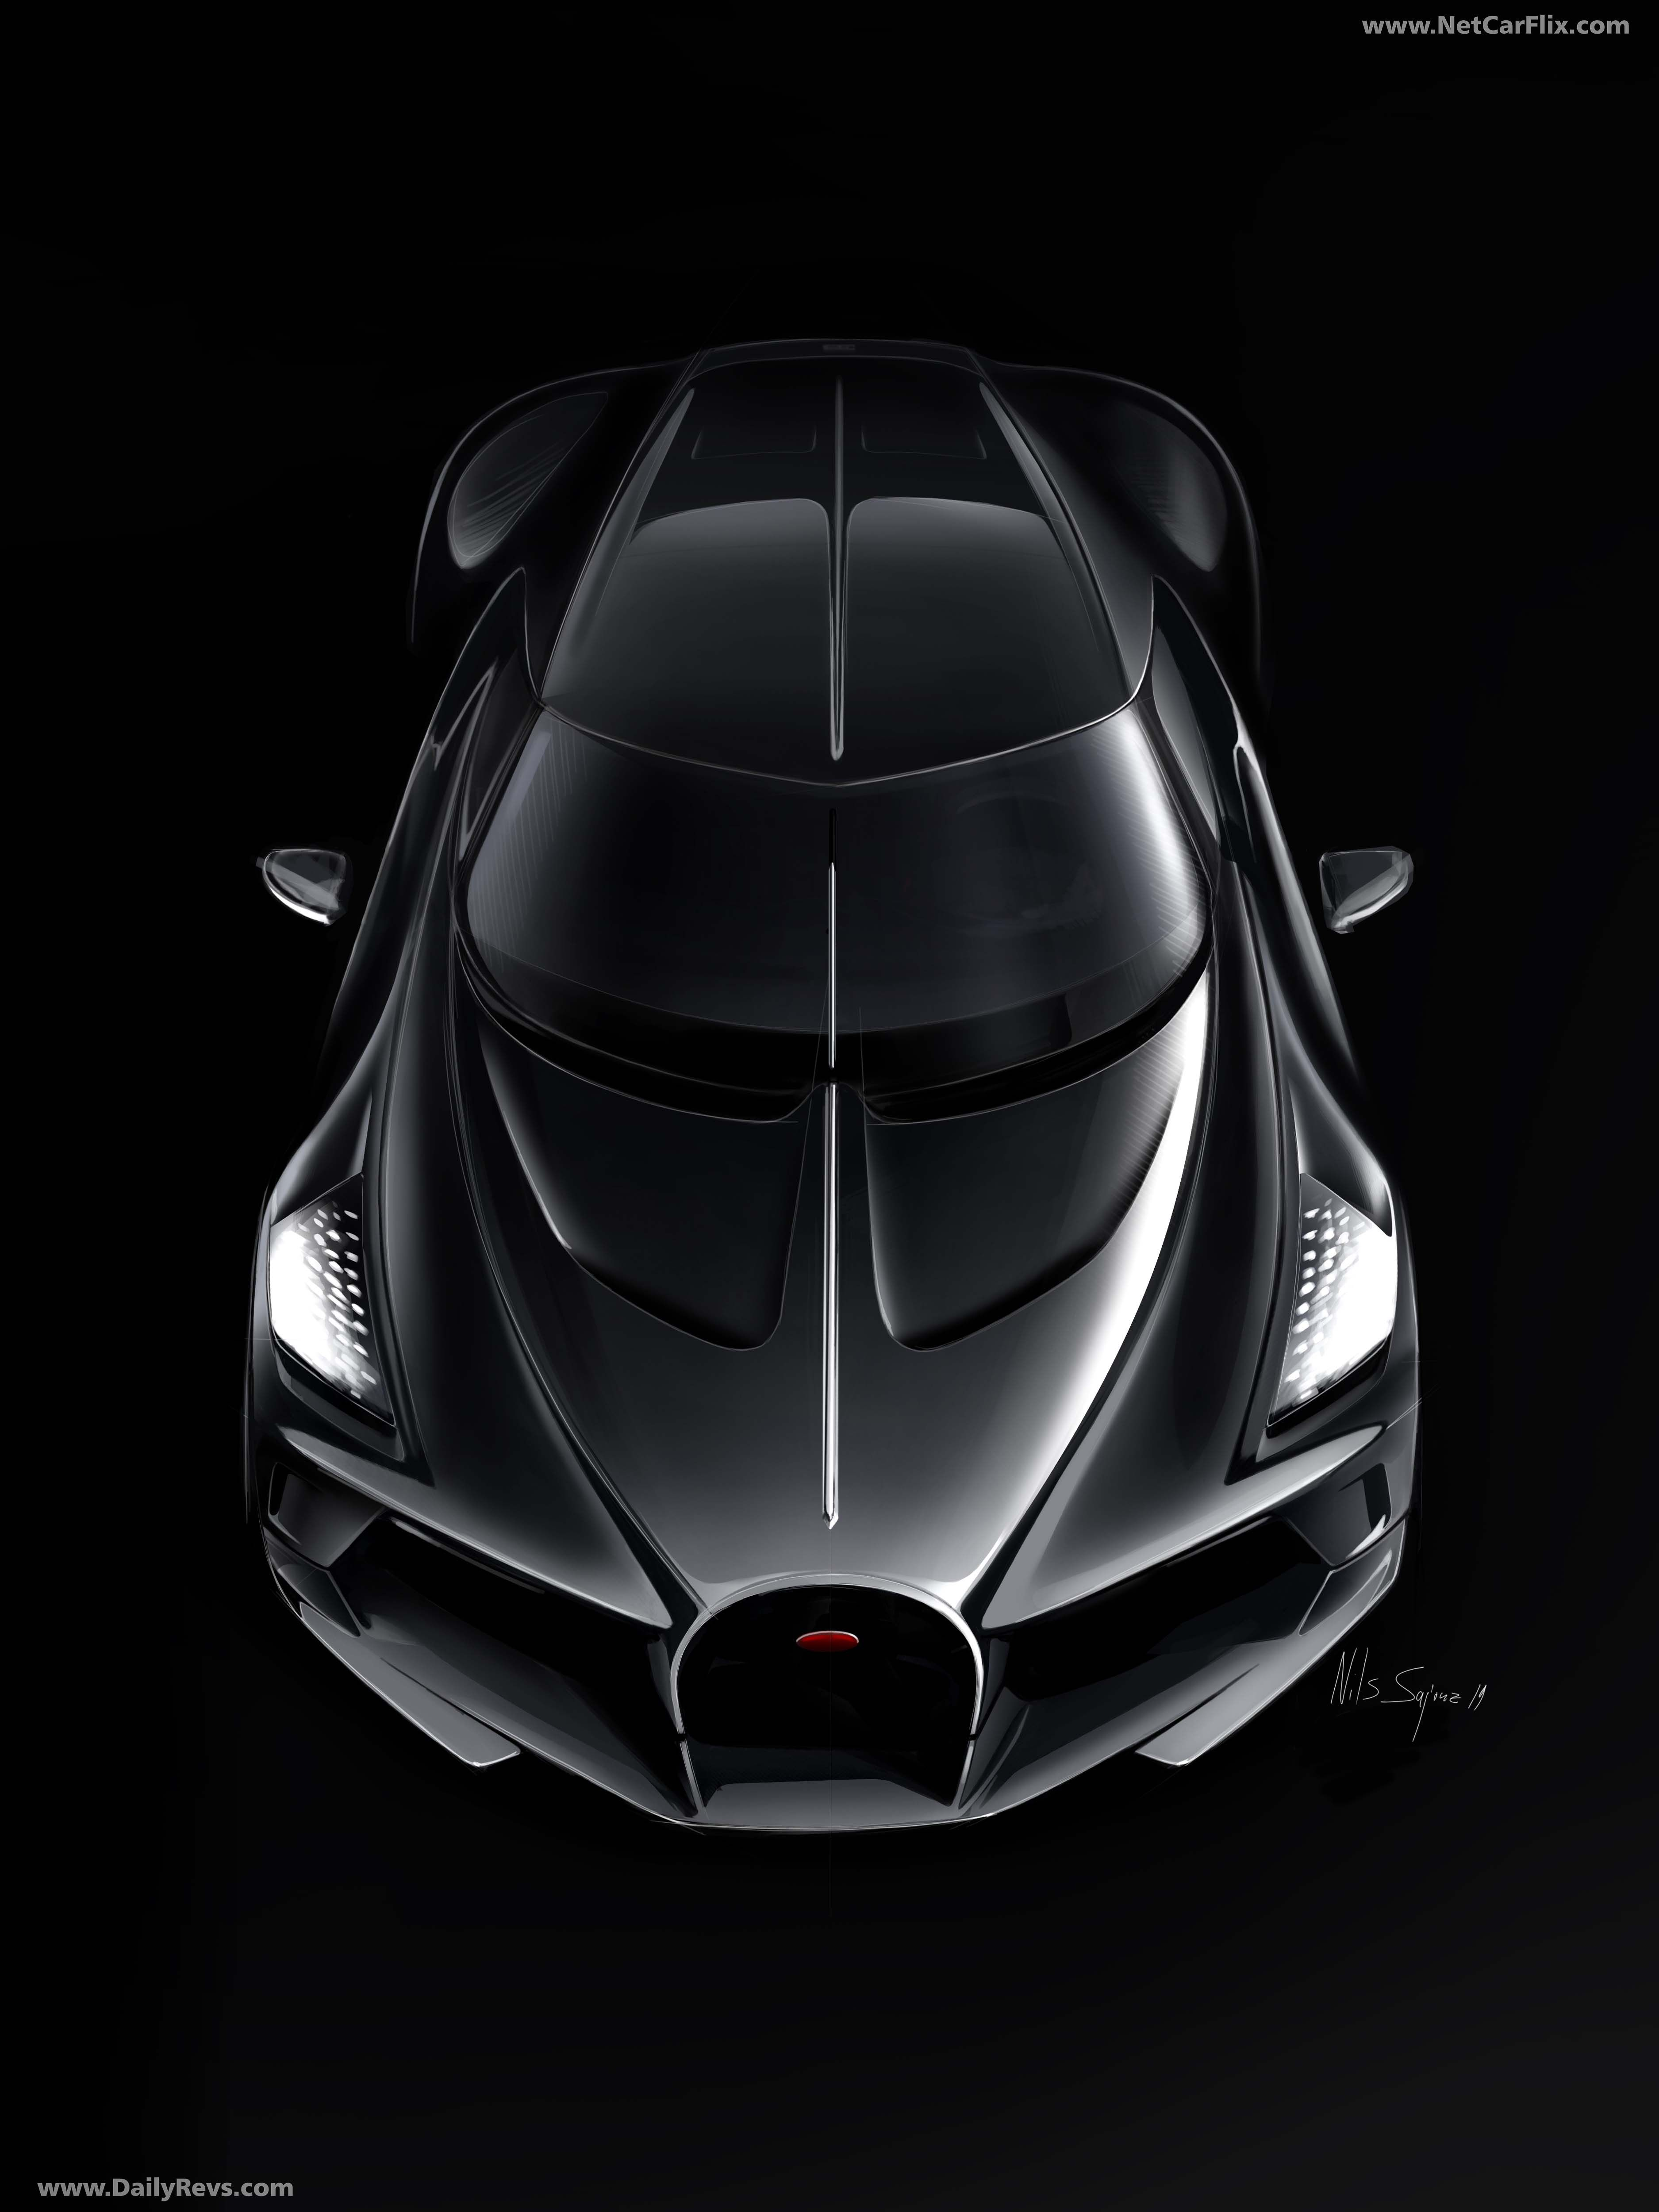 2019 Bugatti La Voiture Noire – HD Pictures, Videos, Specs & Information – Daily…